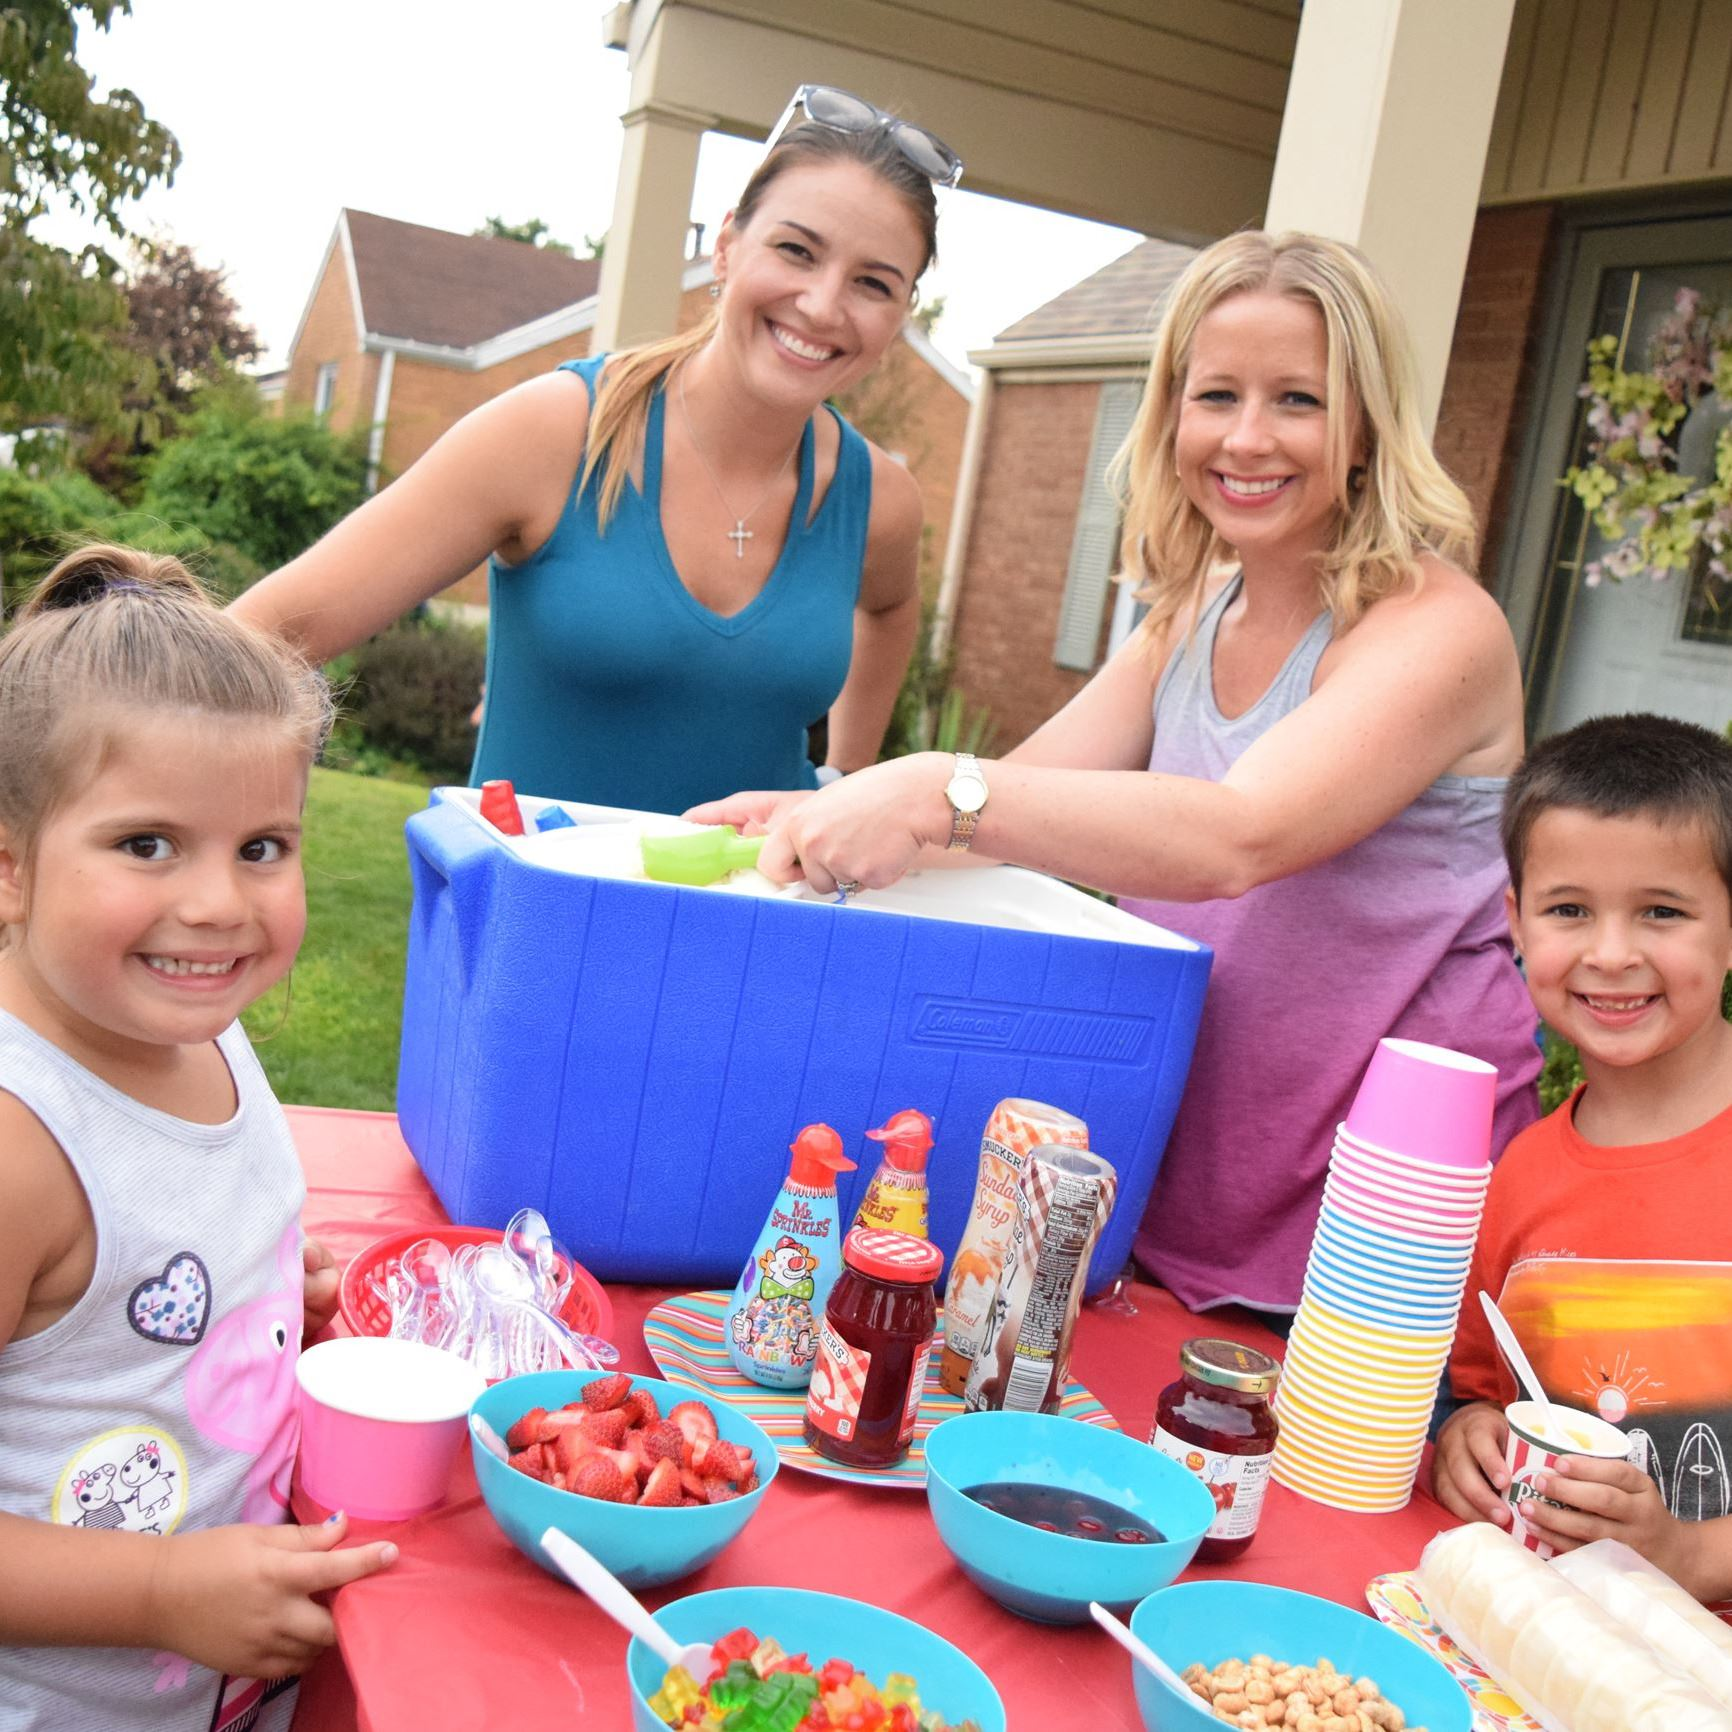 Mothers and children serve ice cream sundaes